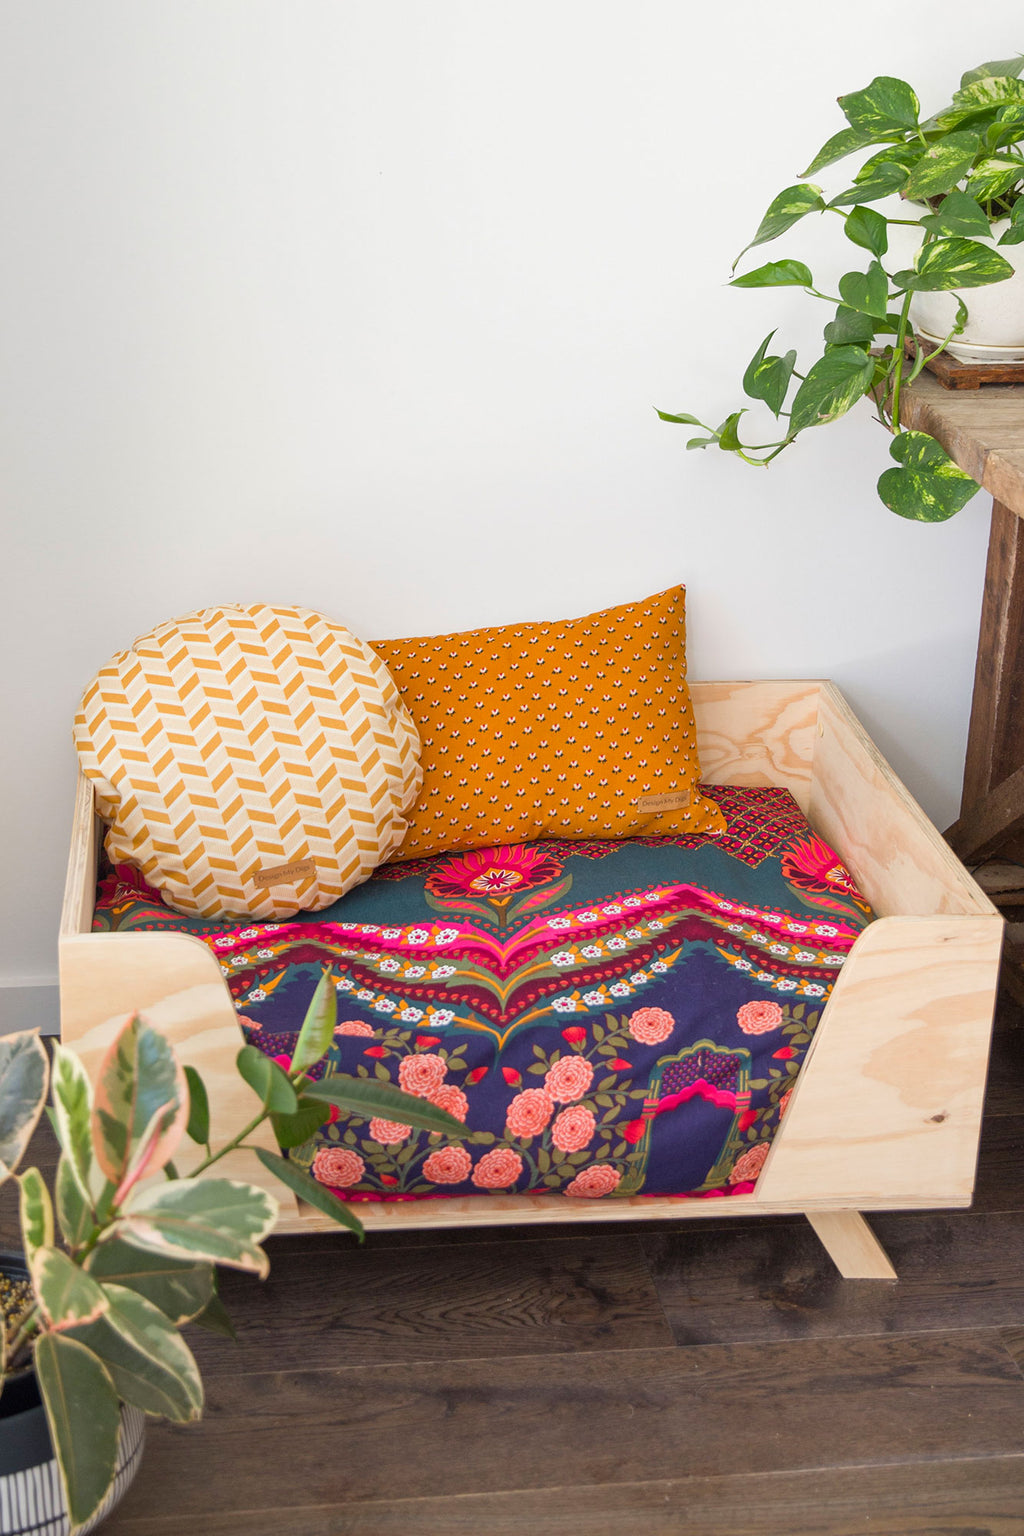 Wooden Pet Beds Online Australia - Design My Digs - Plywood Dog Beds